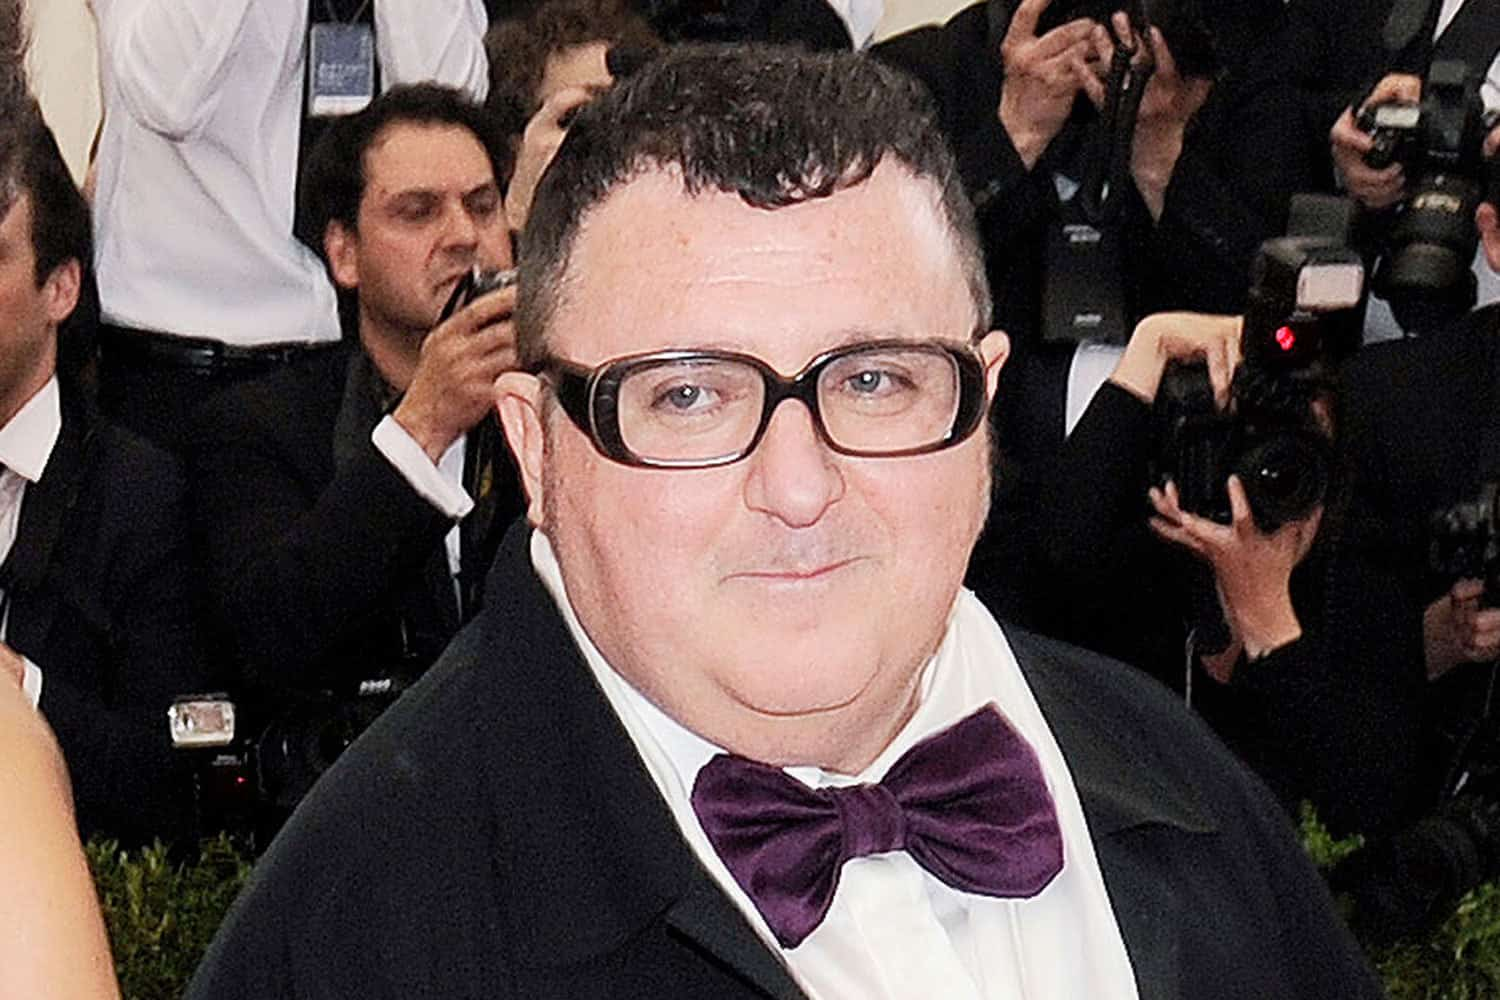 Forum on this topic: Alber Elbaz Is Leaving Lanvin, alber-elbaz-is-leaving-lanvin/